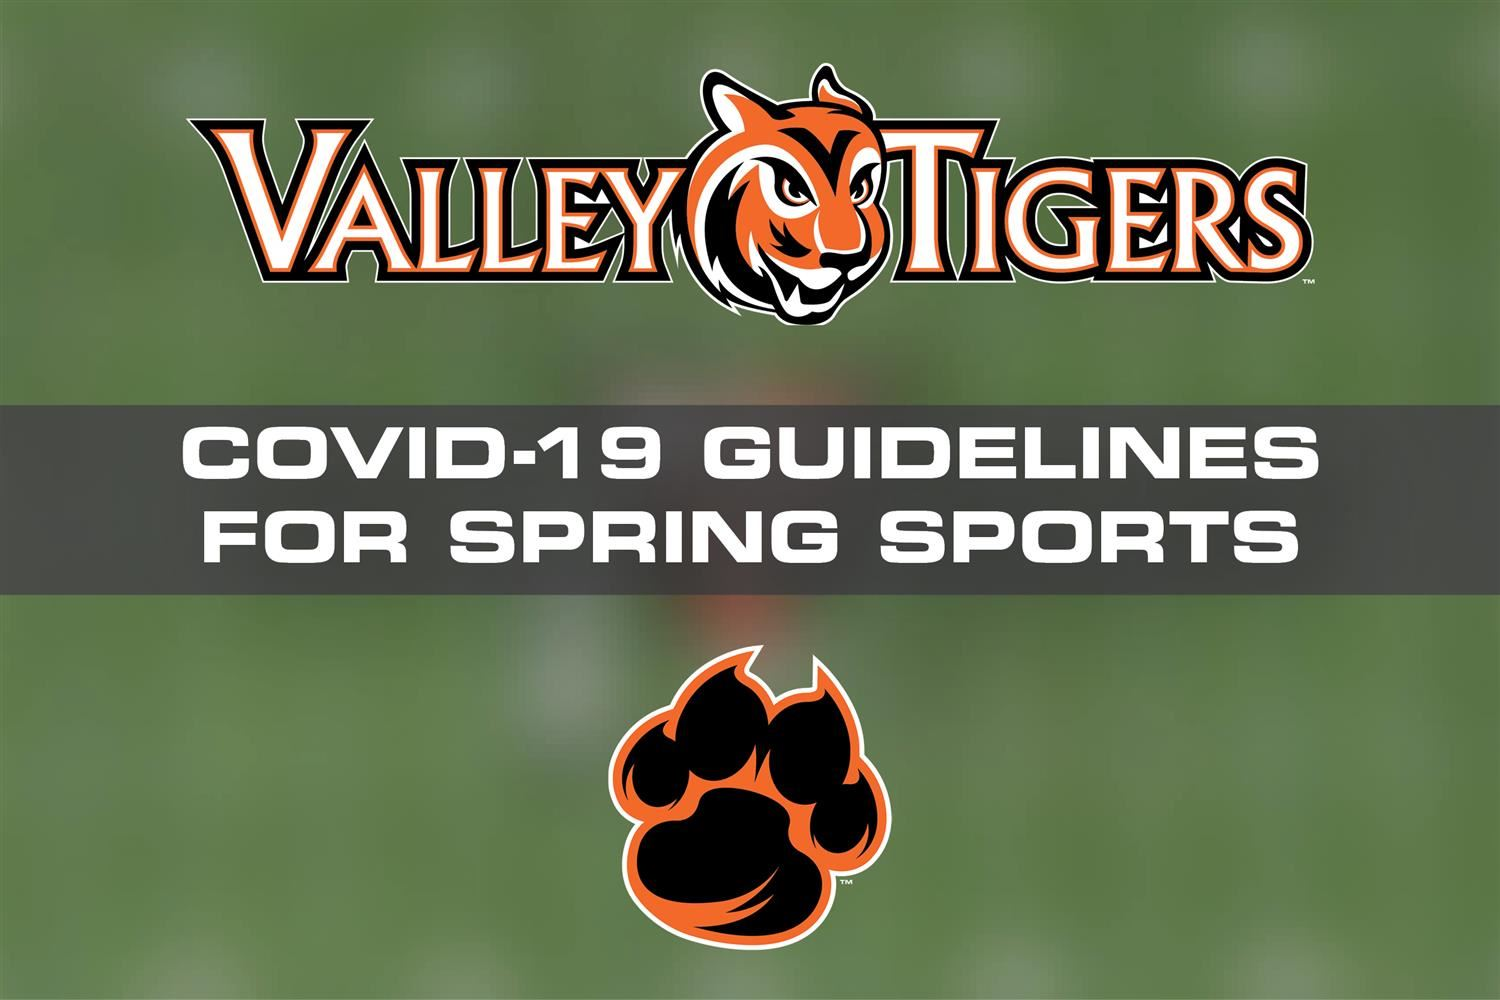 covid-19 guidelines for spring sports